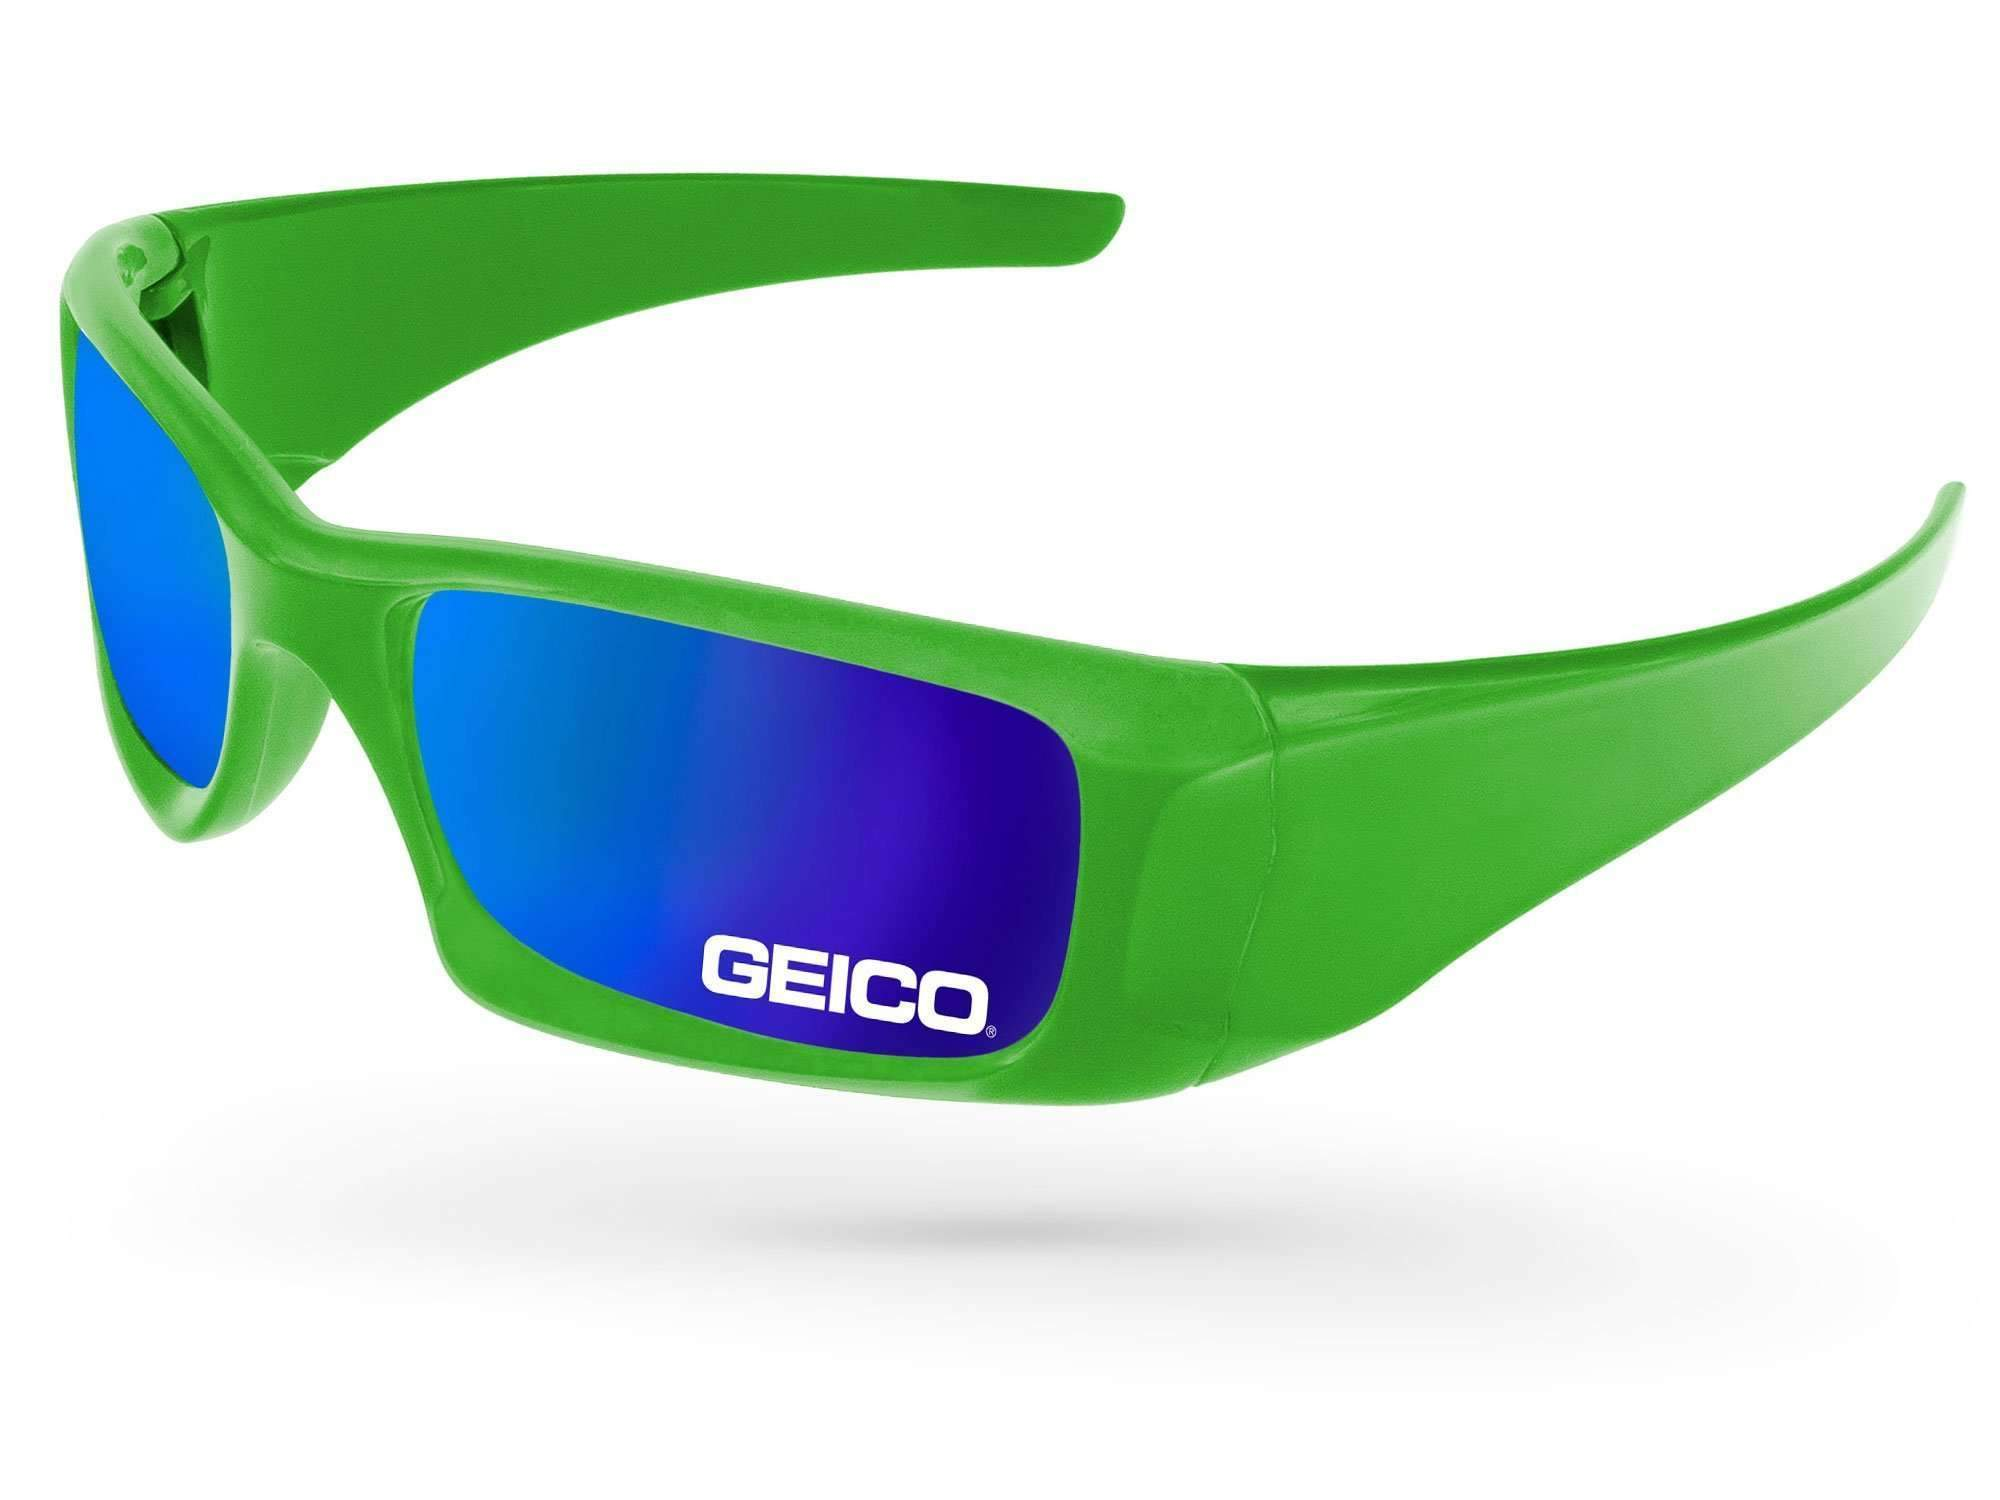 Wrap Mirror Promotional Sunglasses w/ 1-color lens imprint